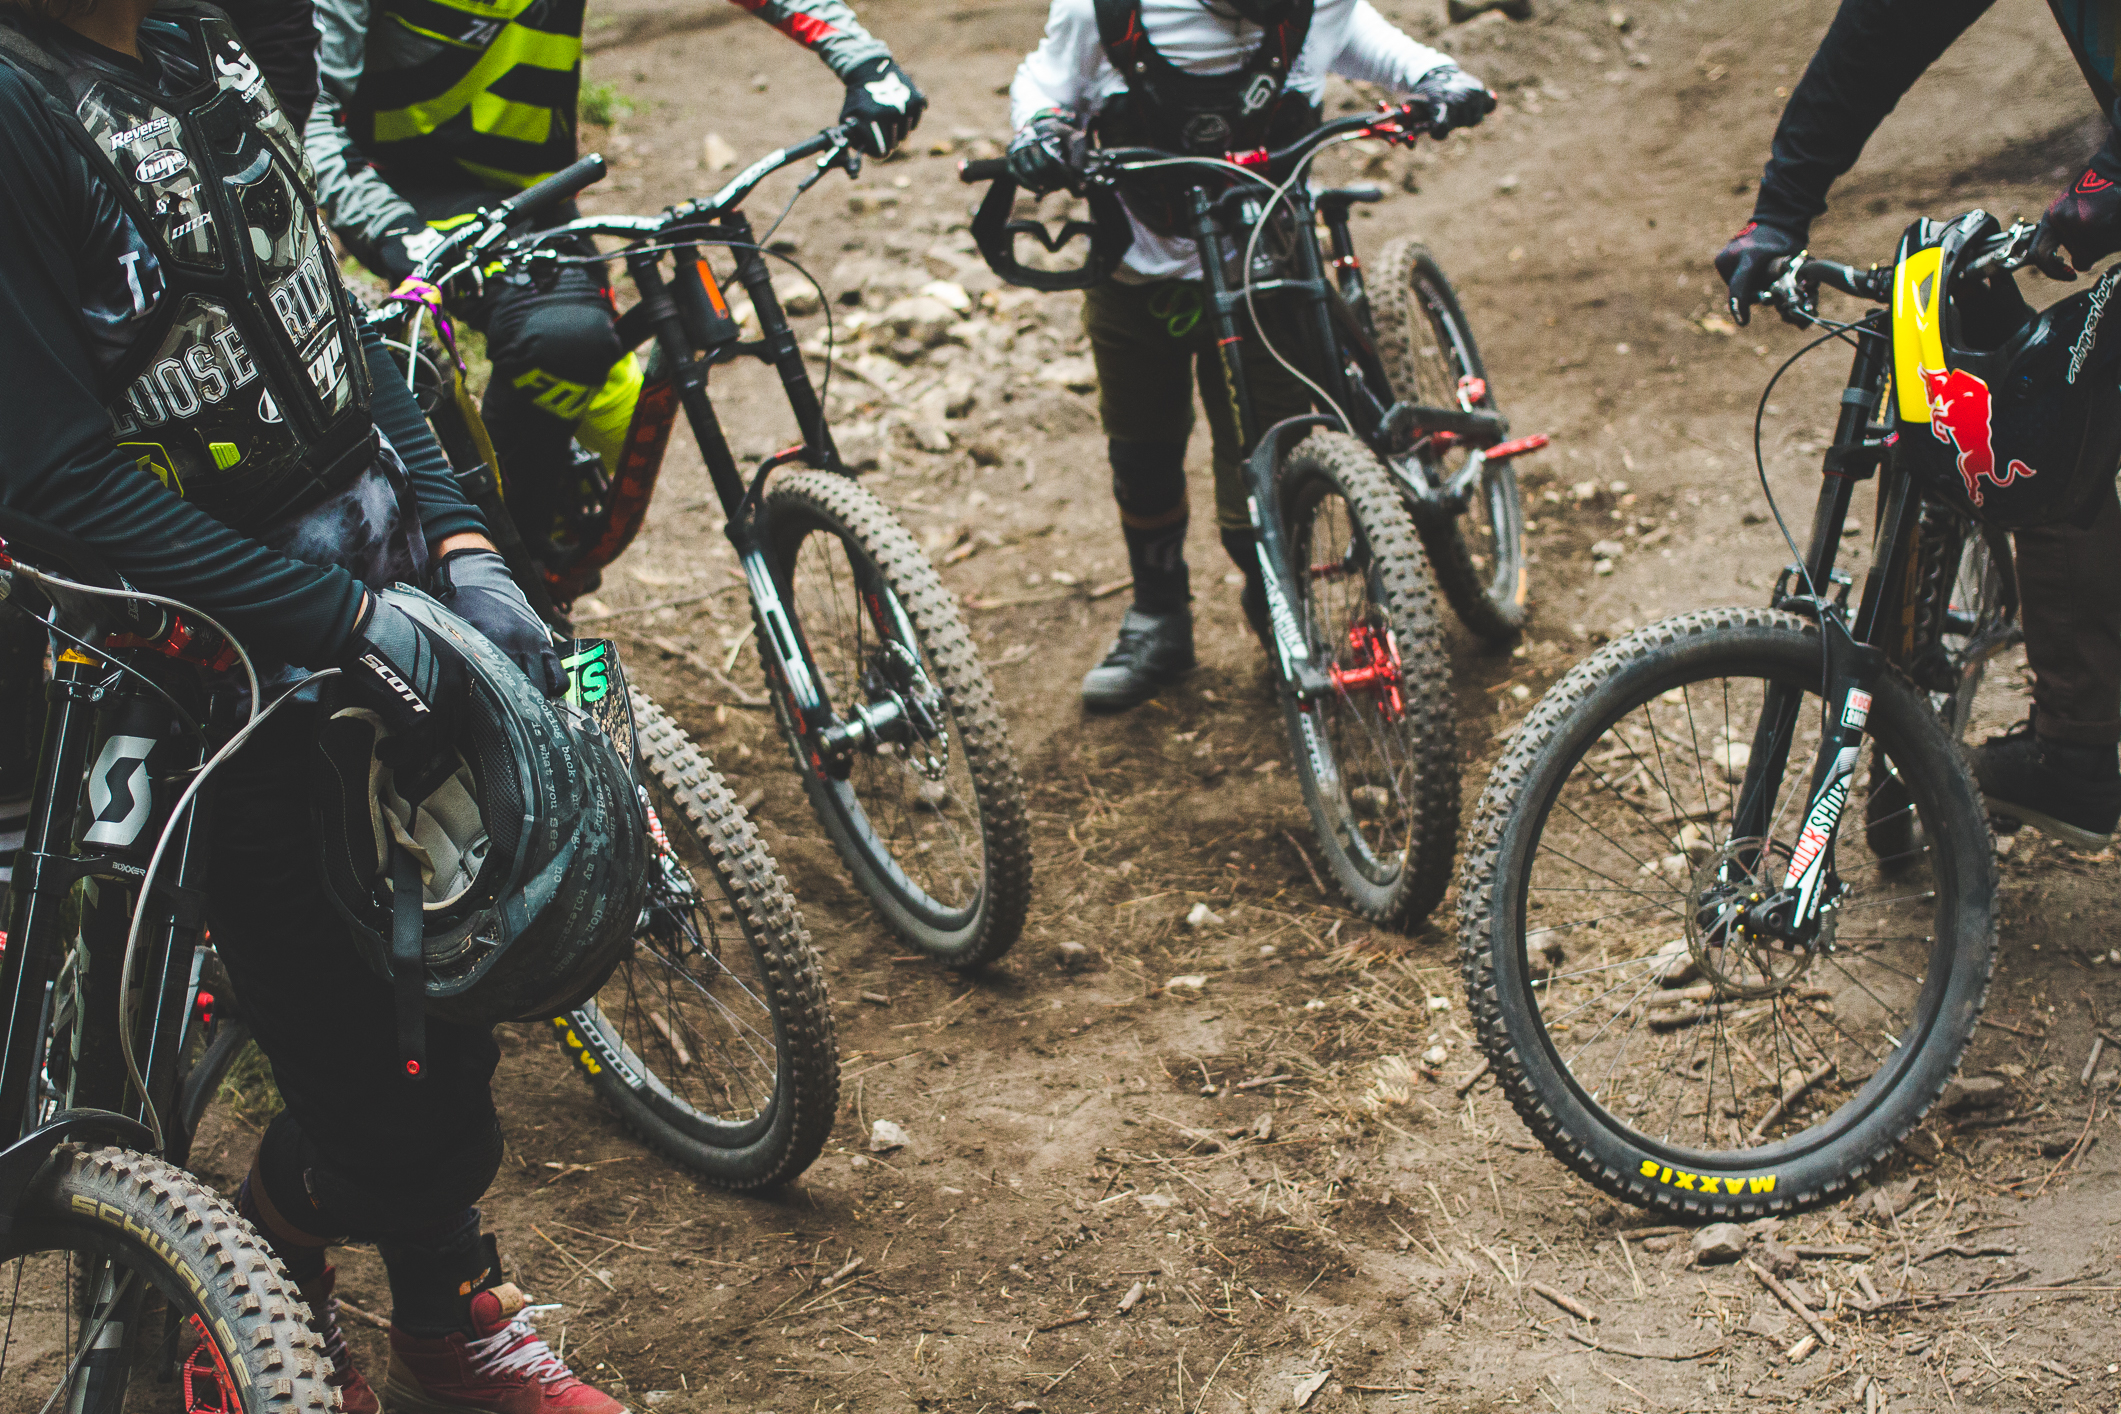 Nico Vink, Sam Reynolds, Adolf Silva and Brandon Semenuk catching some breath while hiking up their bikes to the top.